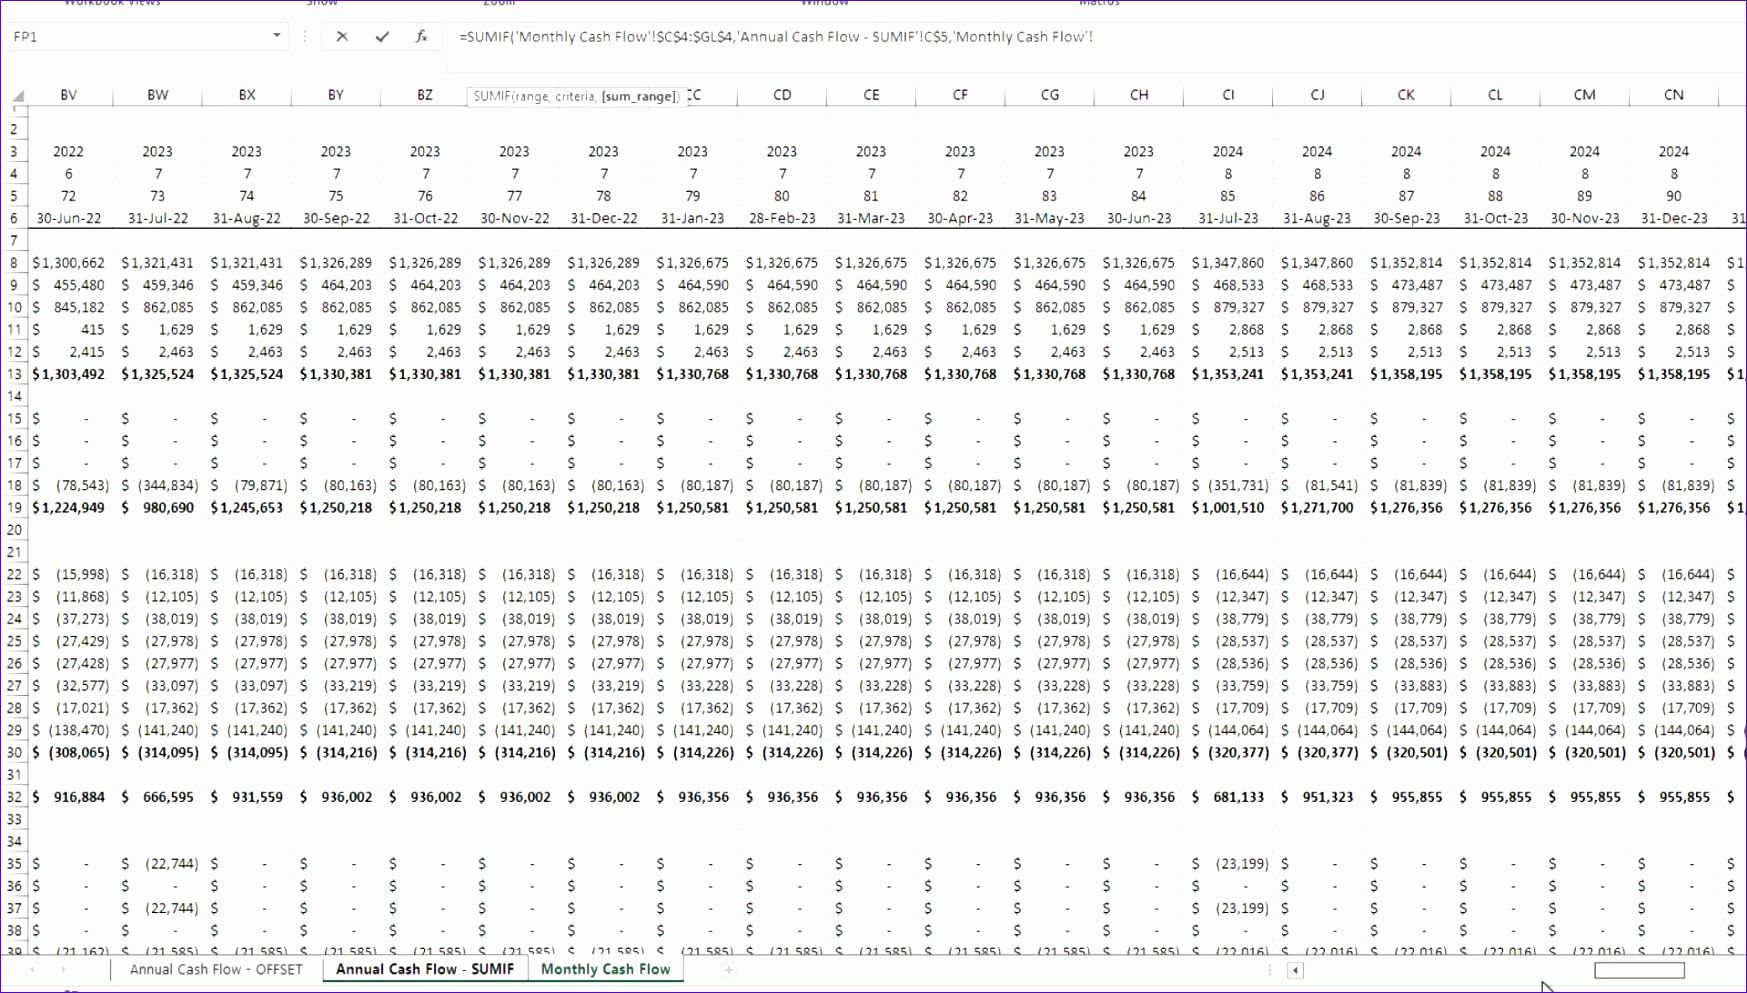 Budget Vs Actual Excel Template Fzokf Inspirational Two Techniques for Converting Monthly to Annual Cash Flows In